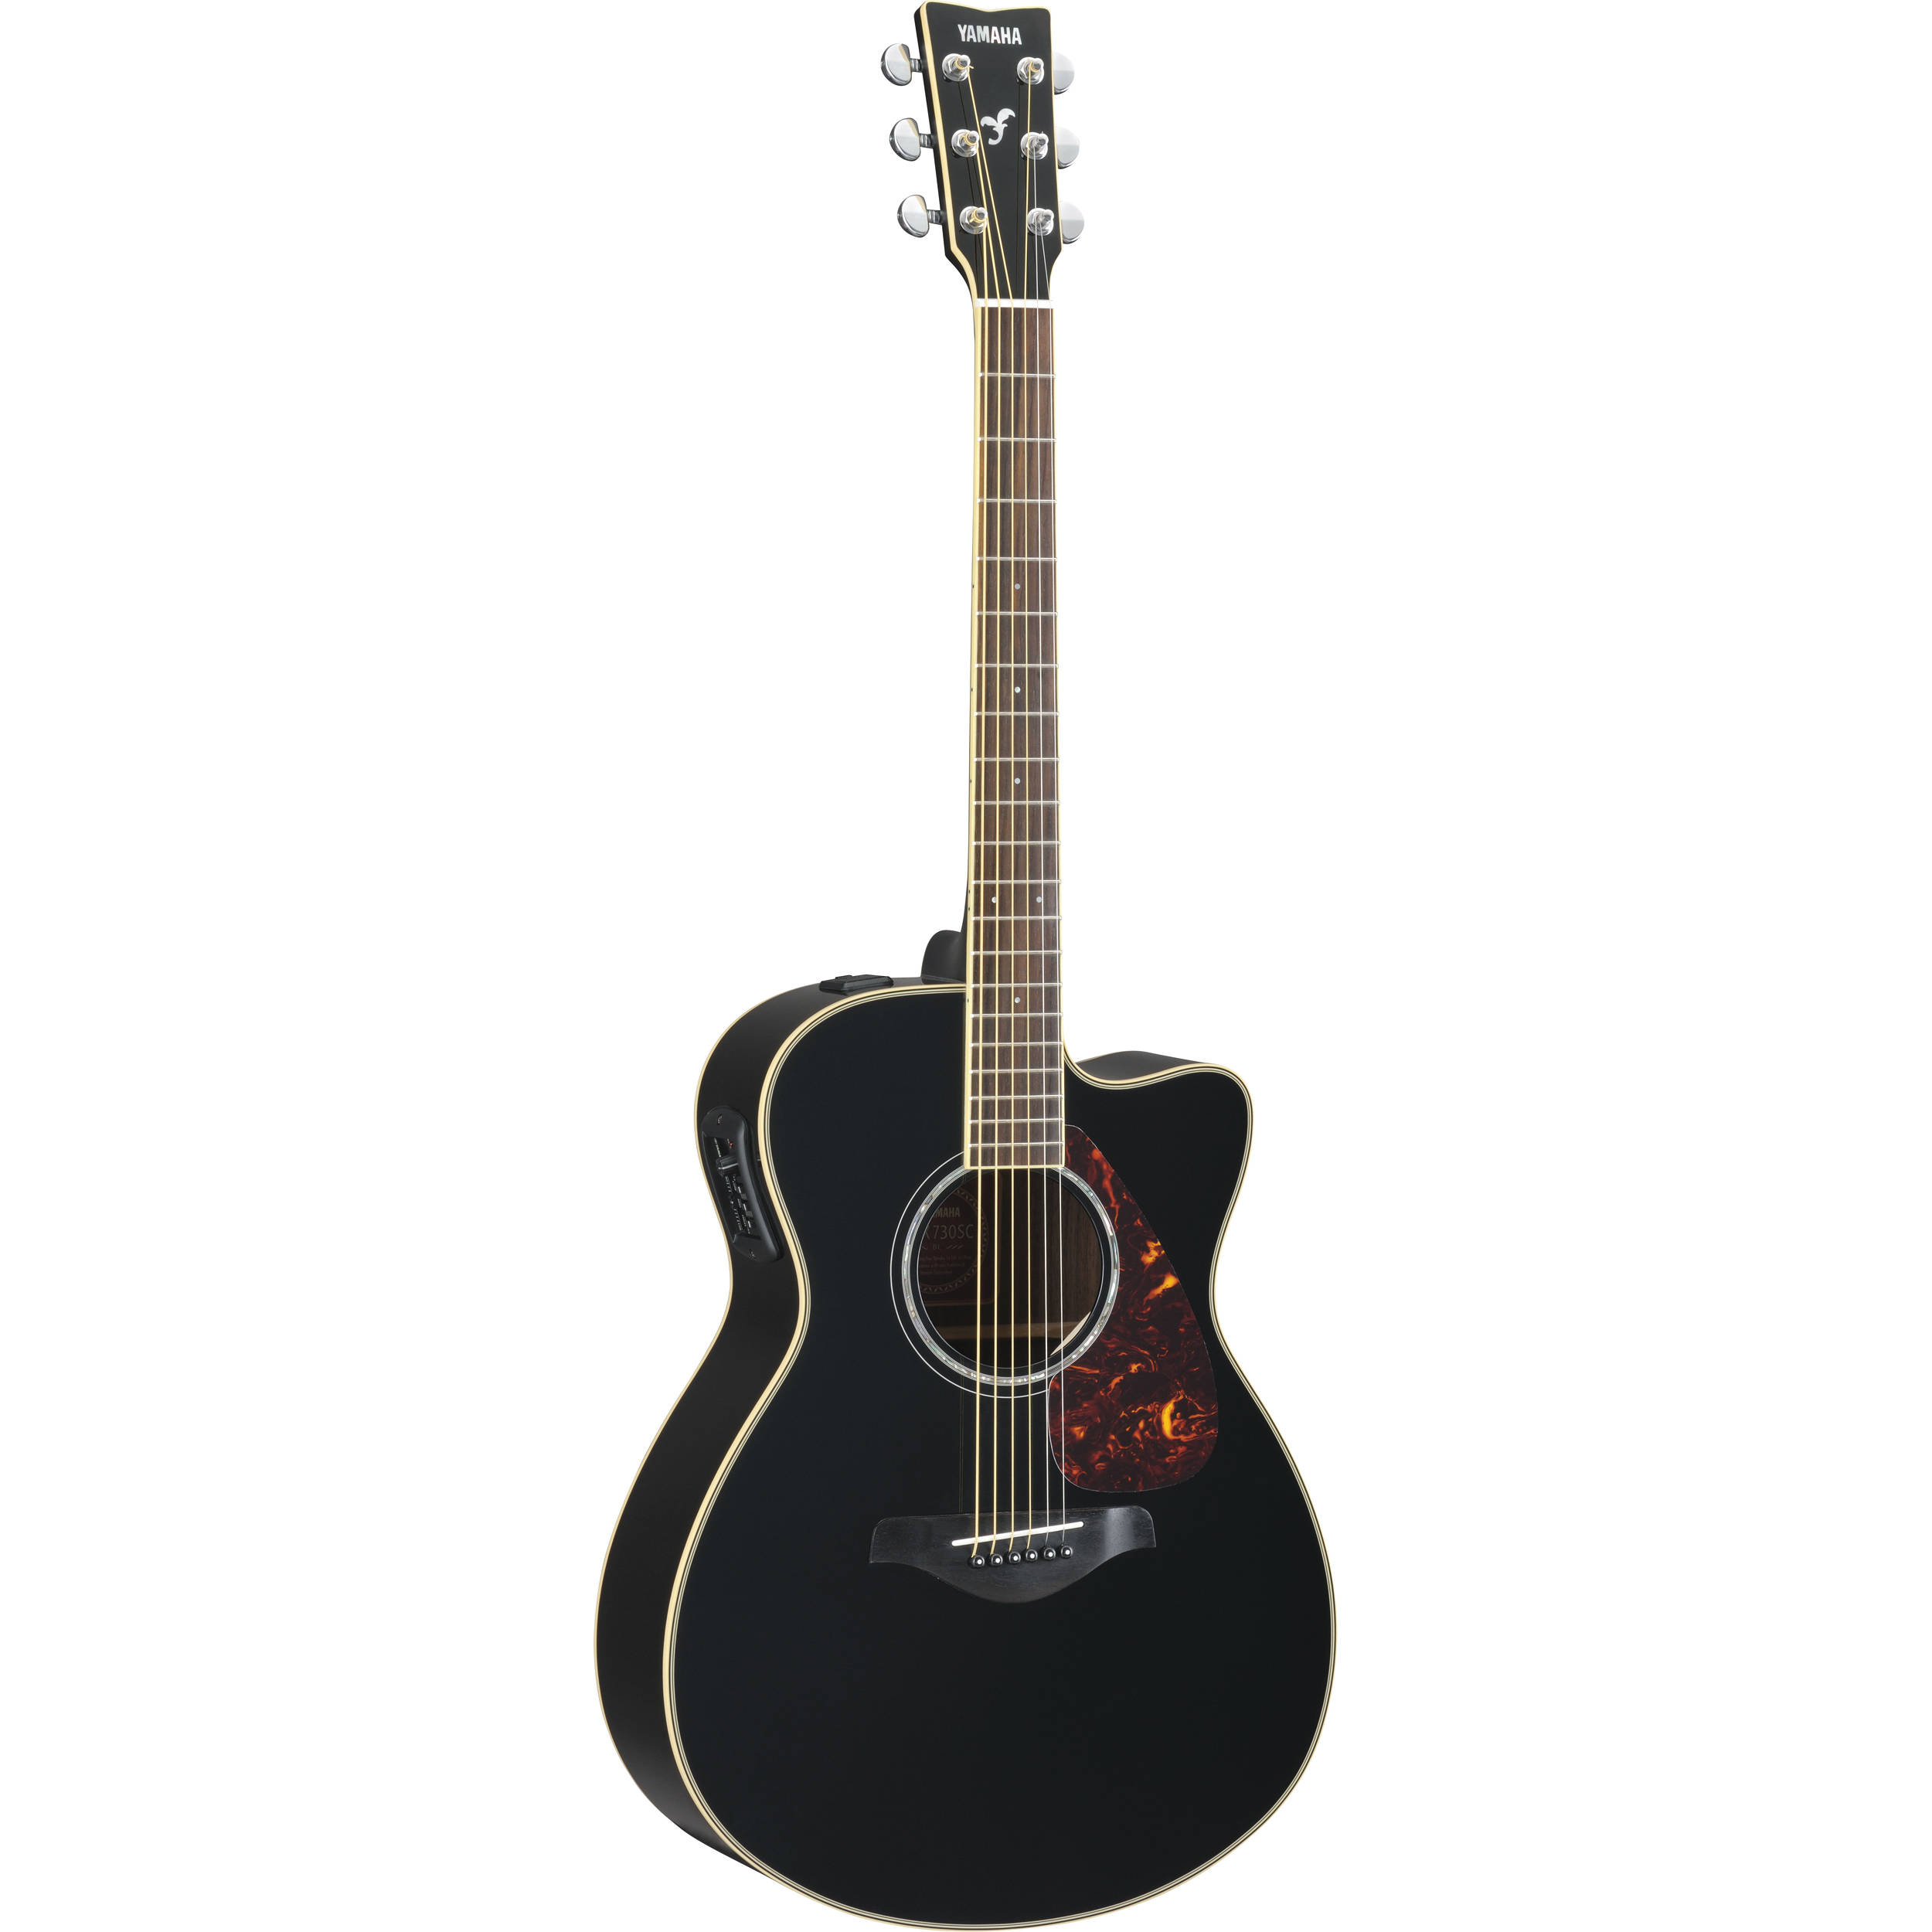 yamaha fsx730sc small body acoustic electric guitar fsx730sc bl